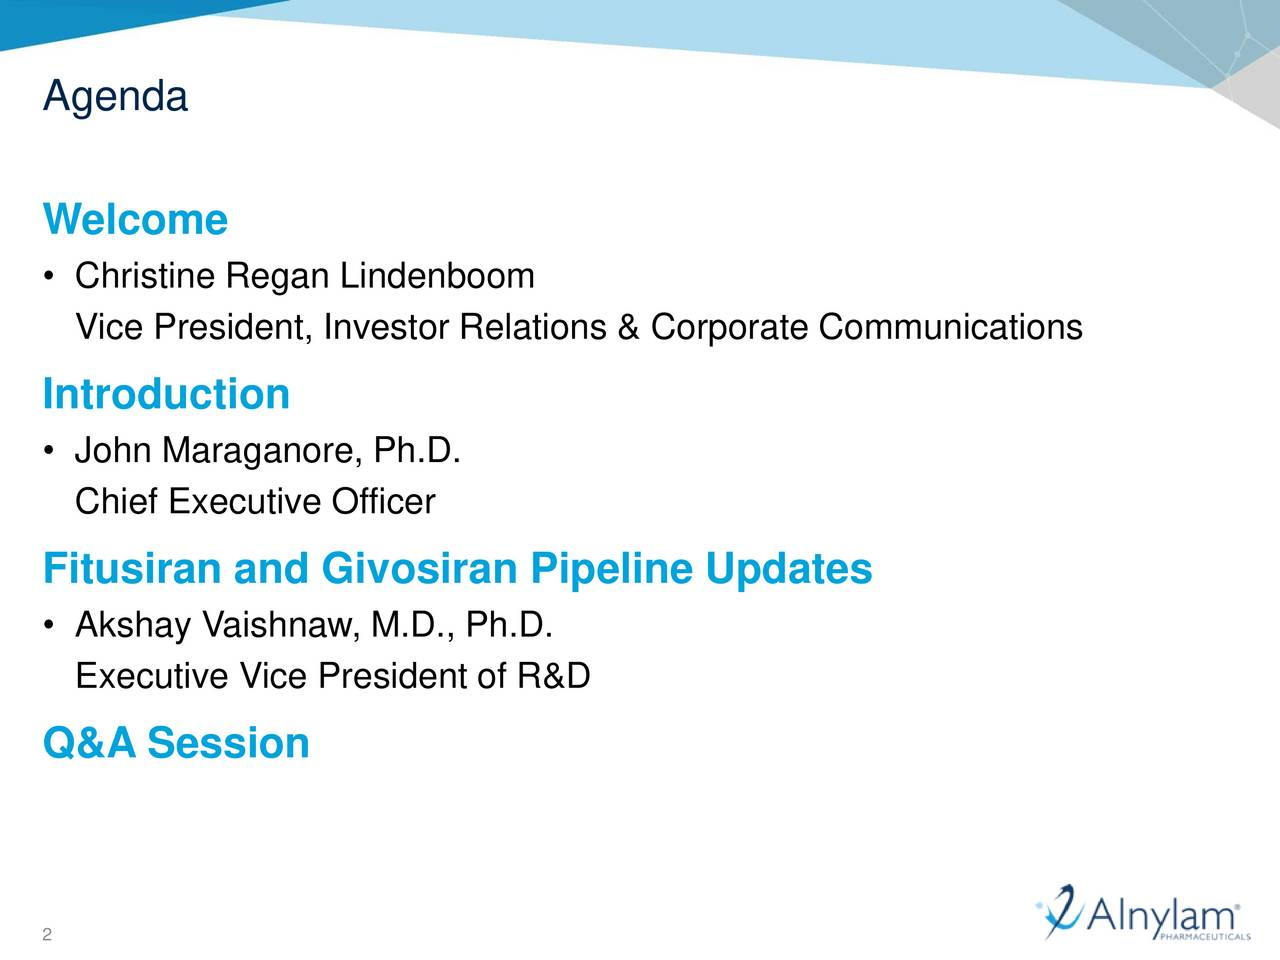 Welcome Christine Regan Lindenboom Vice President, Investor Relations & Corporate Communications Introduction John Maraganore, Ph.D. Chief Executive Officer Fitusiran and Givosiran Pipeline Updates Akshay Vaishnaw, M.D., Ph.D. Executive Vice President of R&D Q&A Session 2